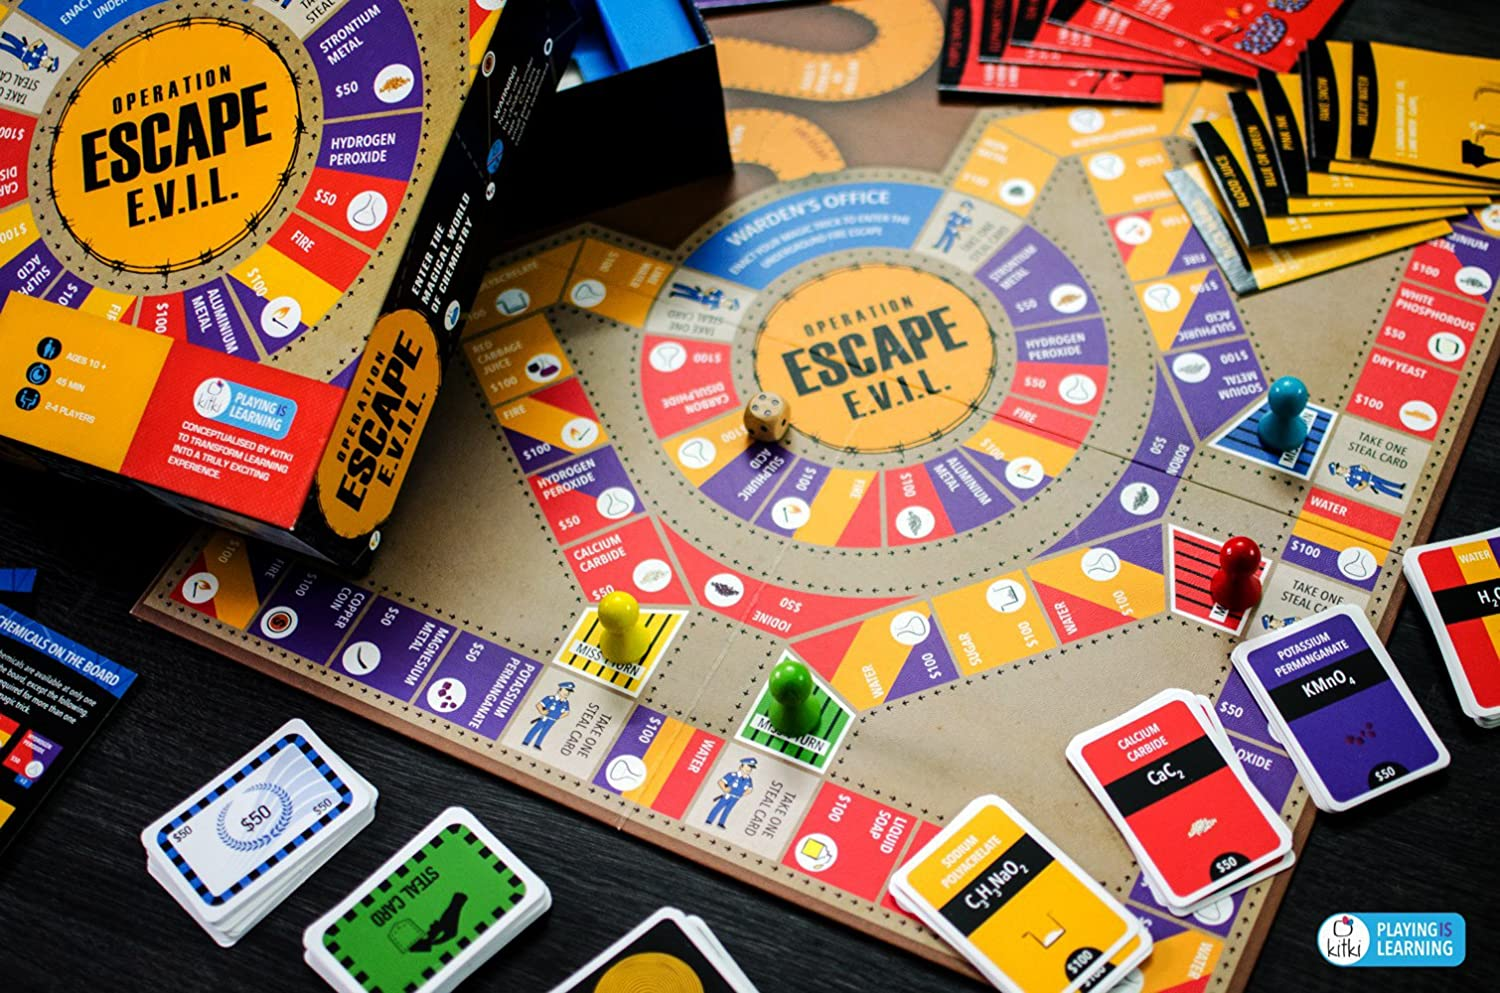 Escape-Evil-Fun-Board-Game-Based-on-Chemistry-and-Magic-for-Boys-and-Girls-2.jpg